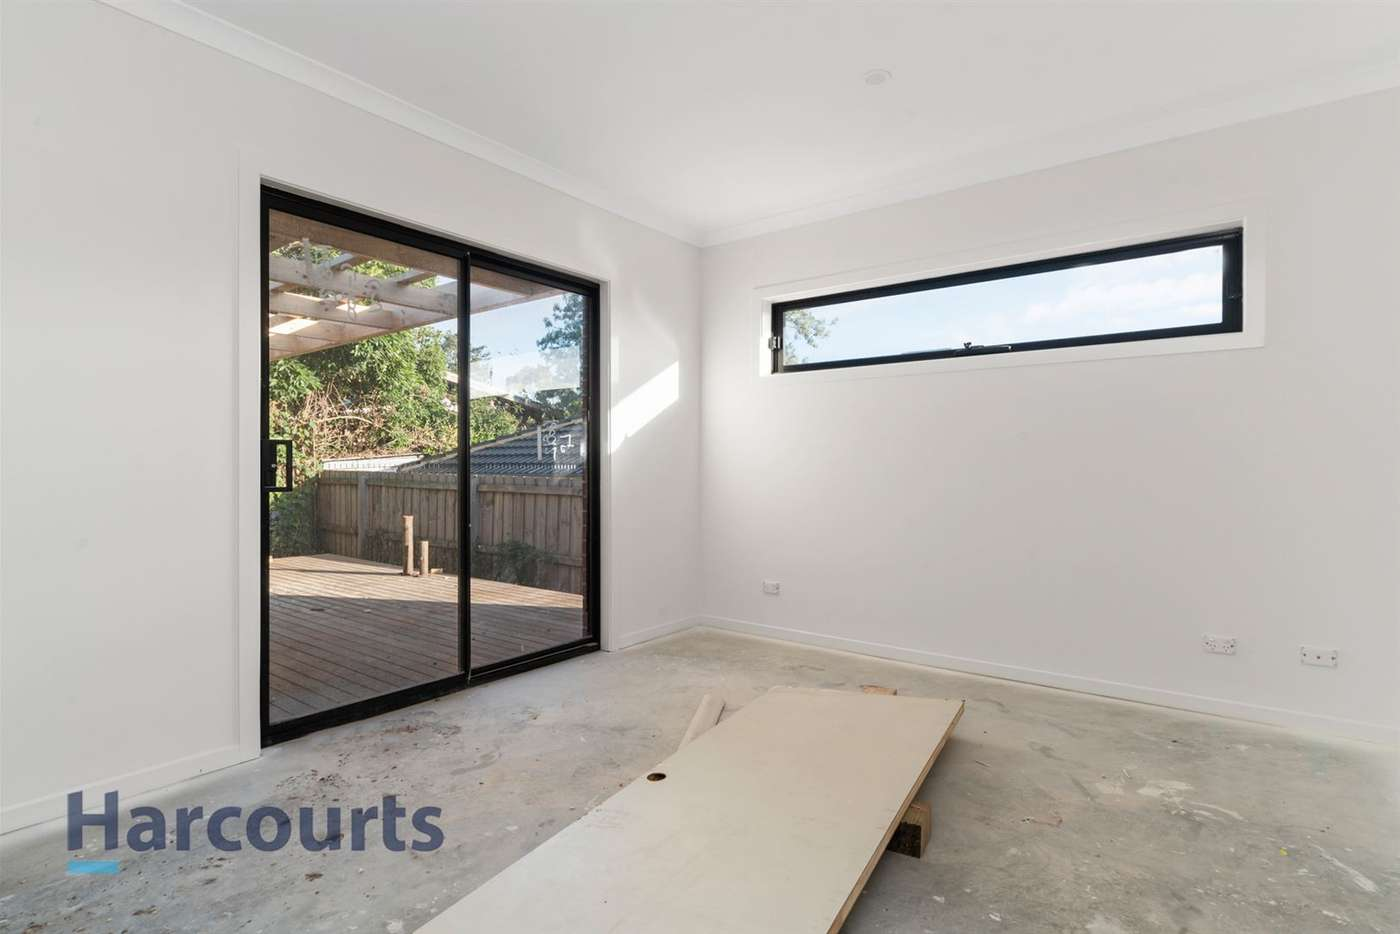 Fifth view of Homely unit listing, 3/13 John Street, Langwarrin VIC 3910